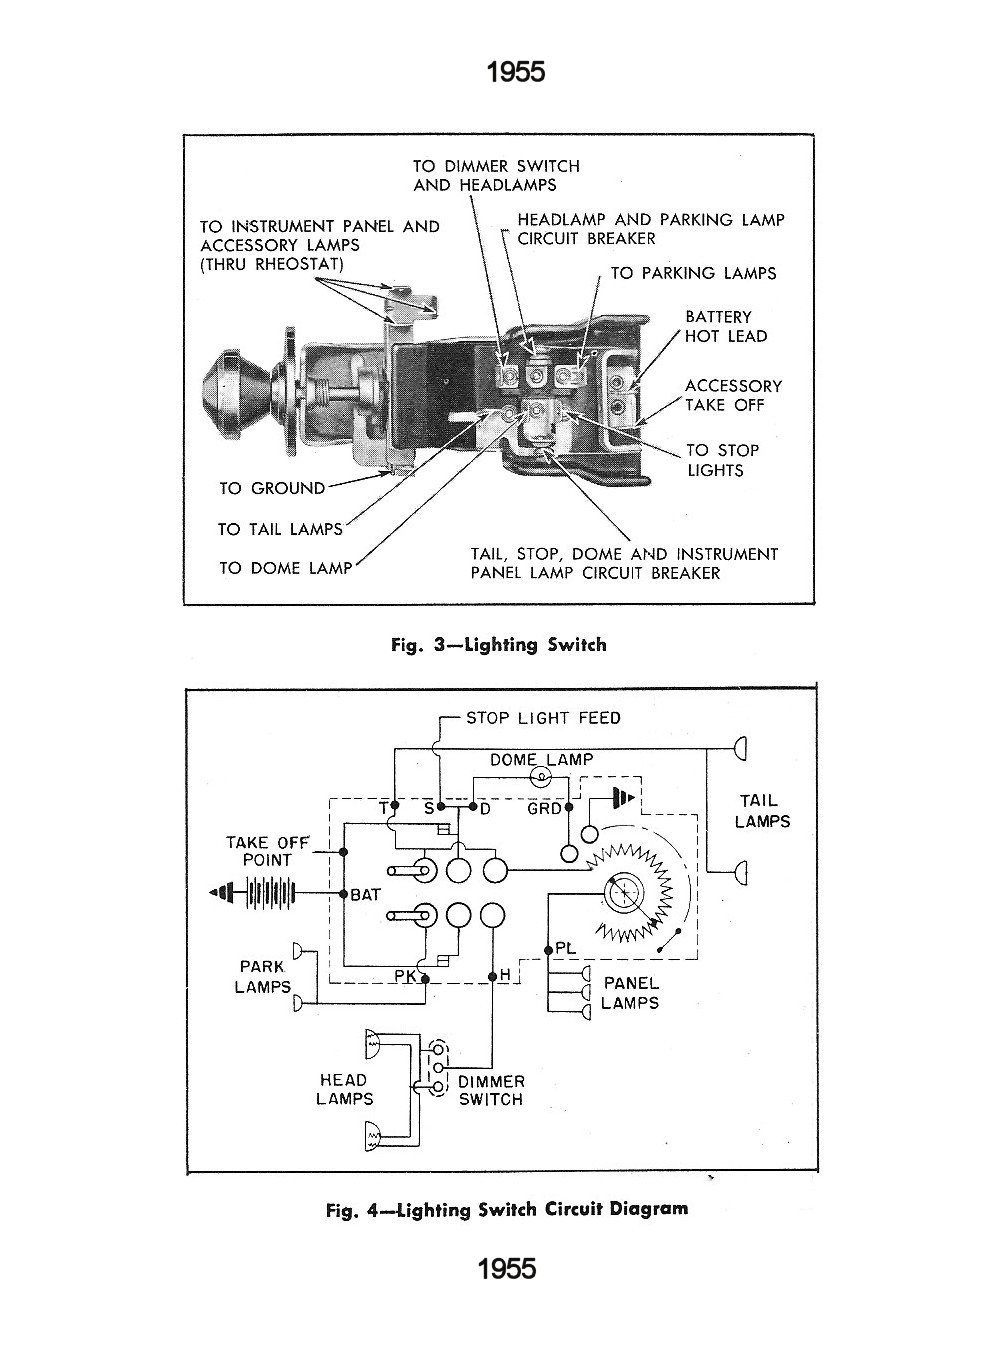 1960 Impala Wiring Diagram - 20.14.danishfashion-mode.de • on 1964 impala flywheel, 2007 impala parts diagram, 1964 impala brochure, 1964 impala air cleaner, 1964 impala motor, 1964 impala horn, 1964 impala interior, 1964 impala steering, 1964 impala firewall, 1964 impala wagon, 1964 impala repair, 1964 impala super sport, 1964 impala hydraulics, 1964 impala clock, 1964 impala brakes, 1964 impala ignition switch, 1964 impala transmission, 1964 impala distributor, 1964 impala headlights, 1964 impala suspension,